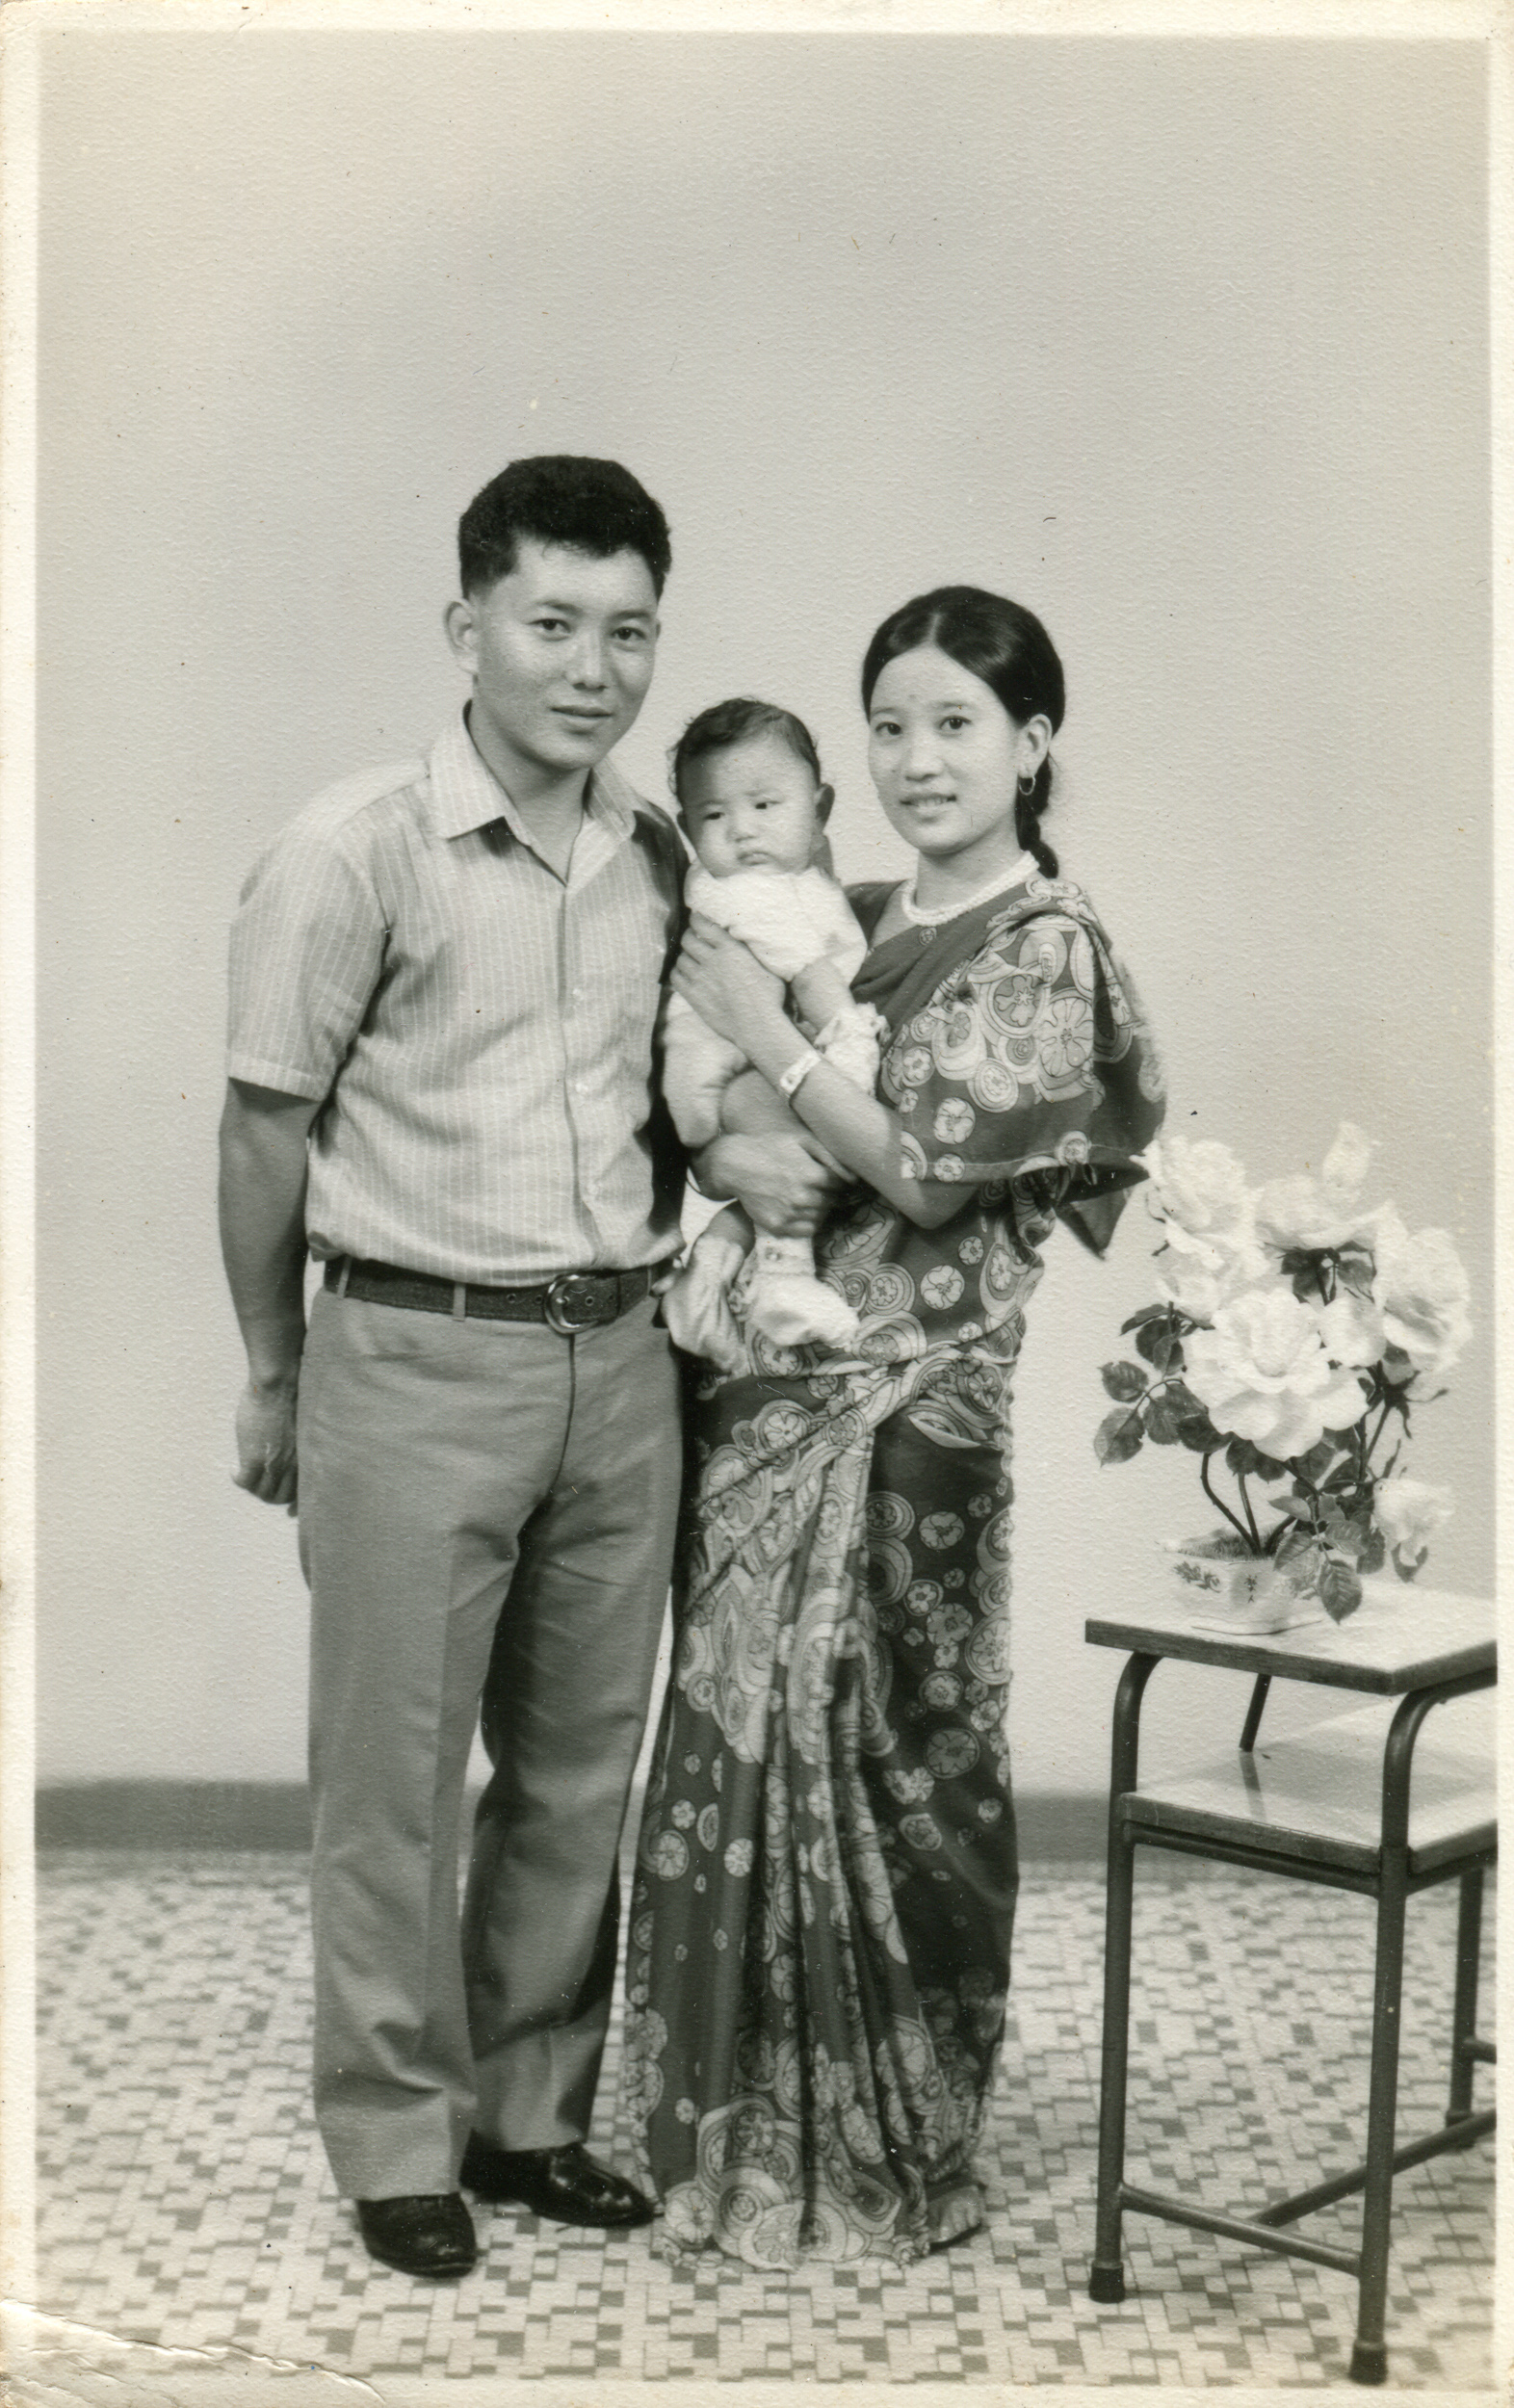 Studio portrait at a Paya Lebar studio. Arun Kumar Tamang with his wife, Meena Tamang and son – just 7 days old when this portrait was taken. By then, Arun has been in the Singapore Gurkha Contingent for close to eight years. Date: Sep 1972. Photo Collection: Aswin Tamang / SGPM.